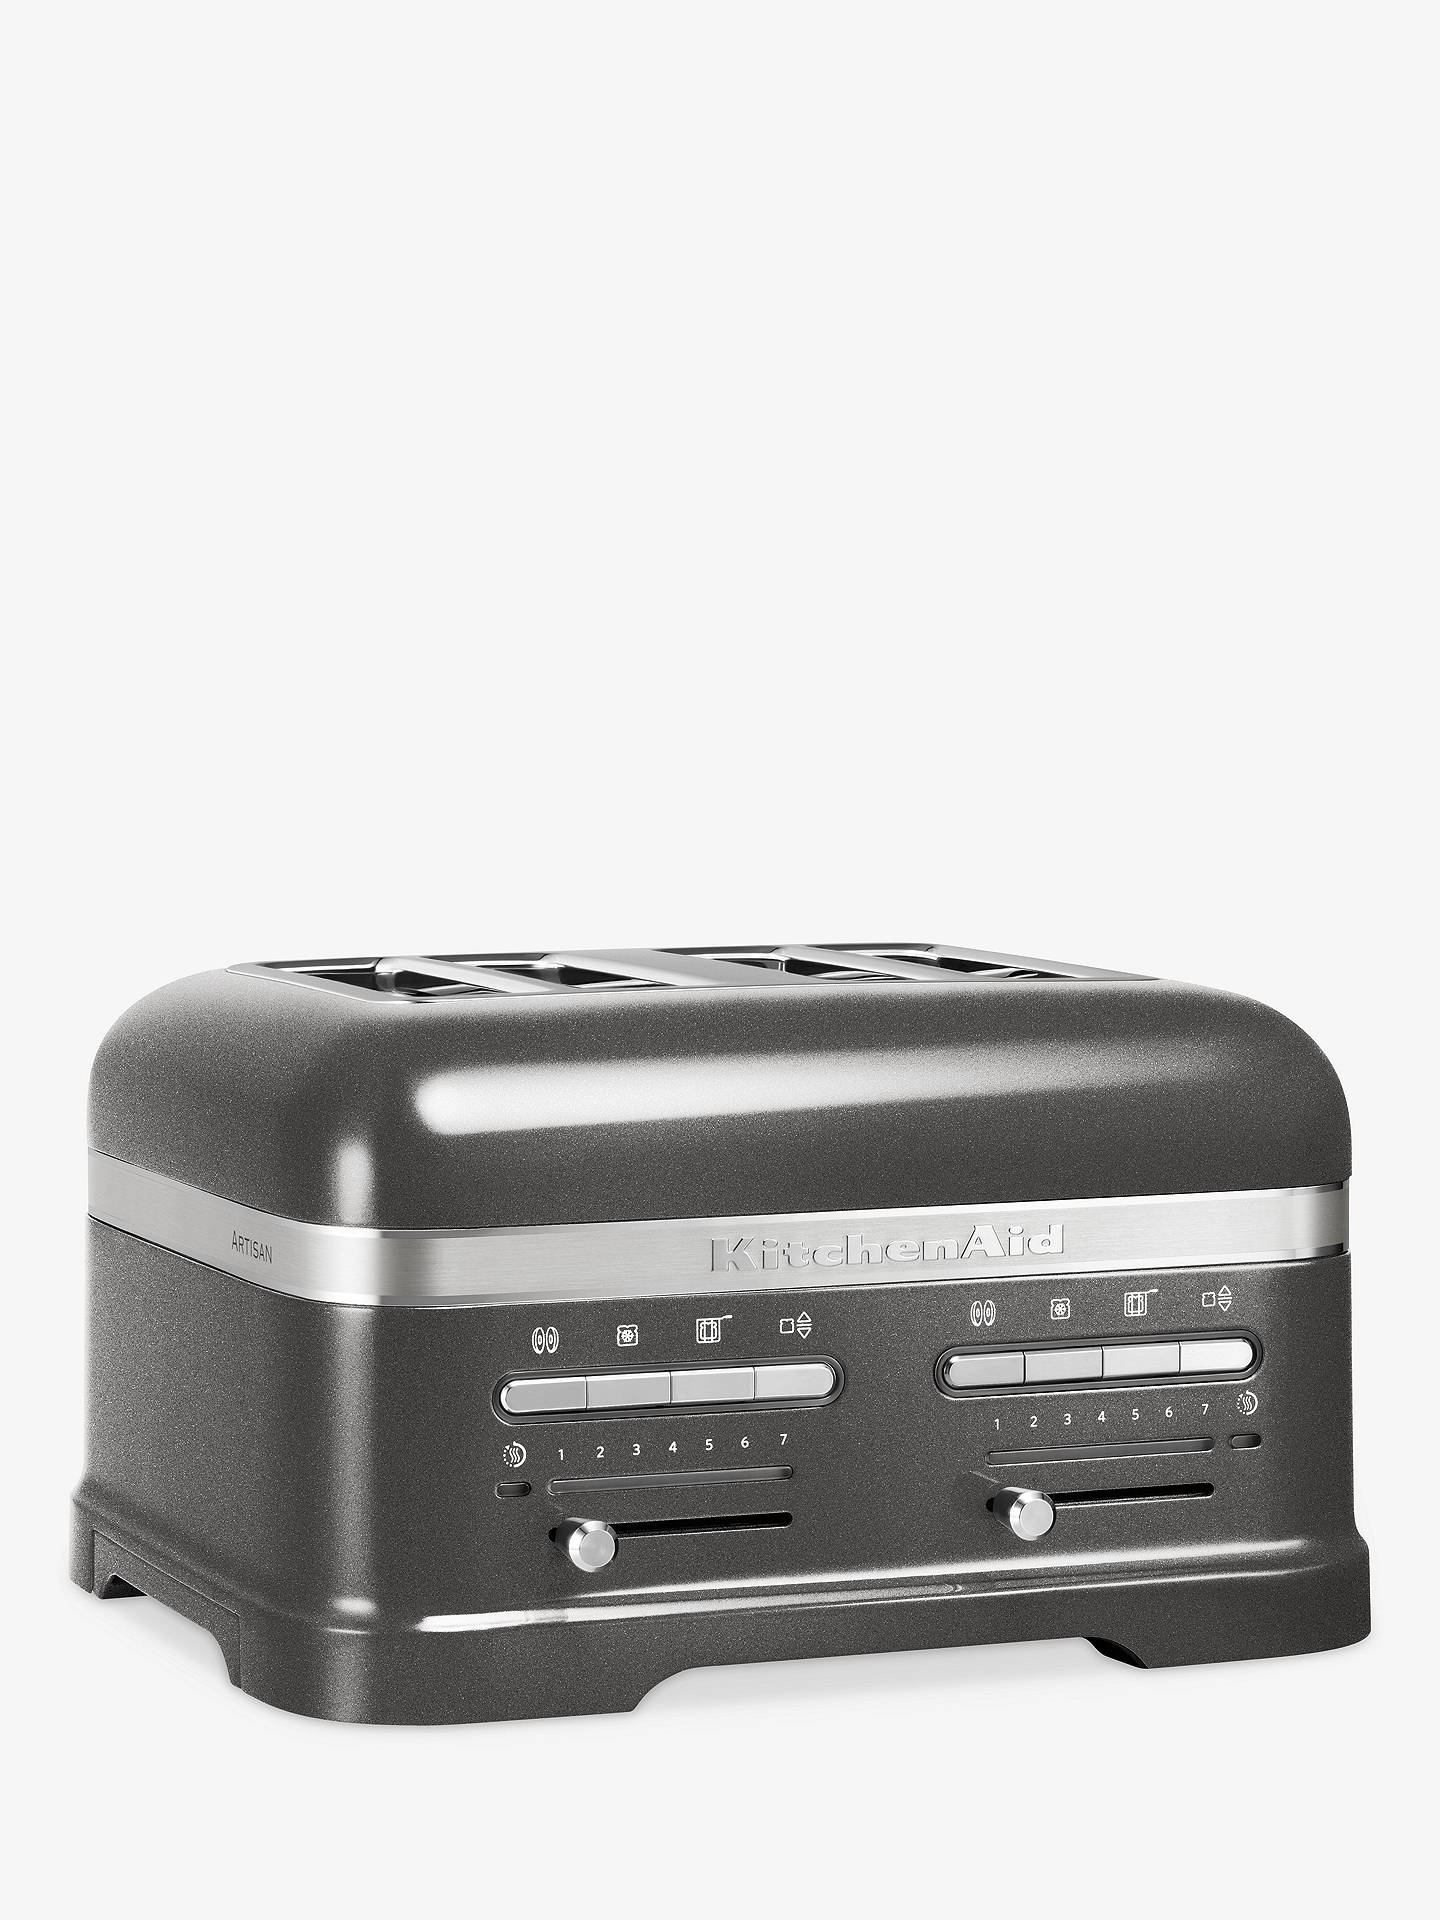 BuyKitchenAid Artisan 4-Slice Toaster, Medallion Silver Online at johnlewis.com